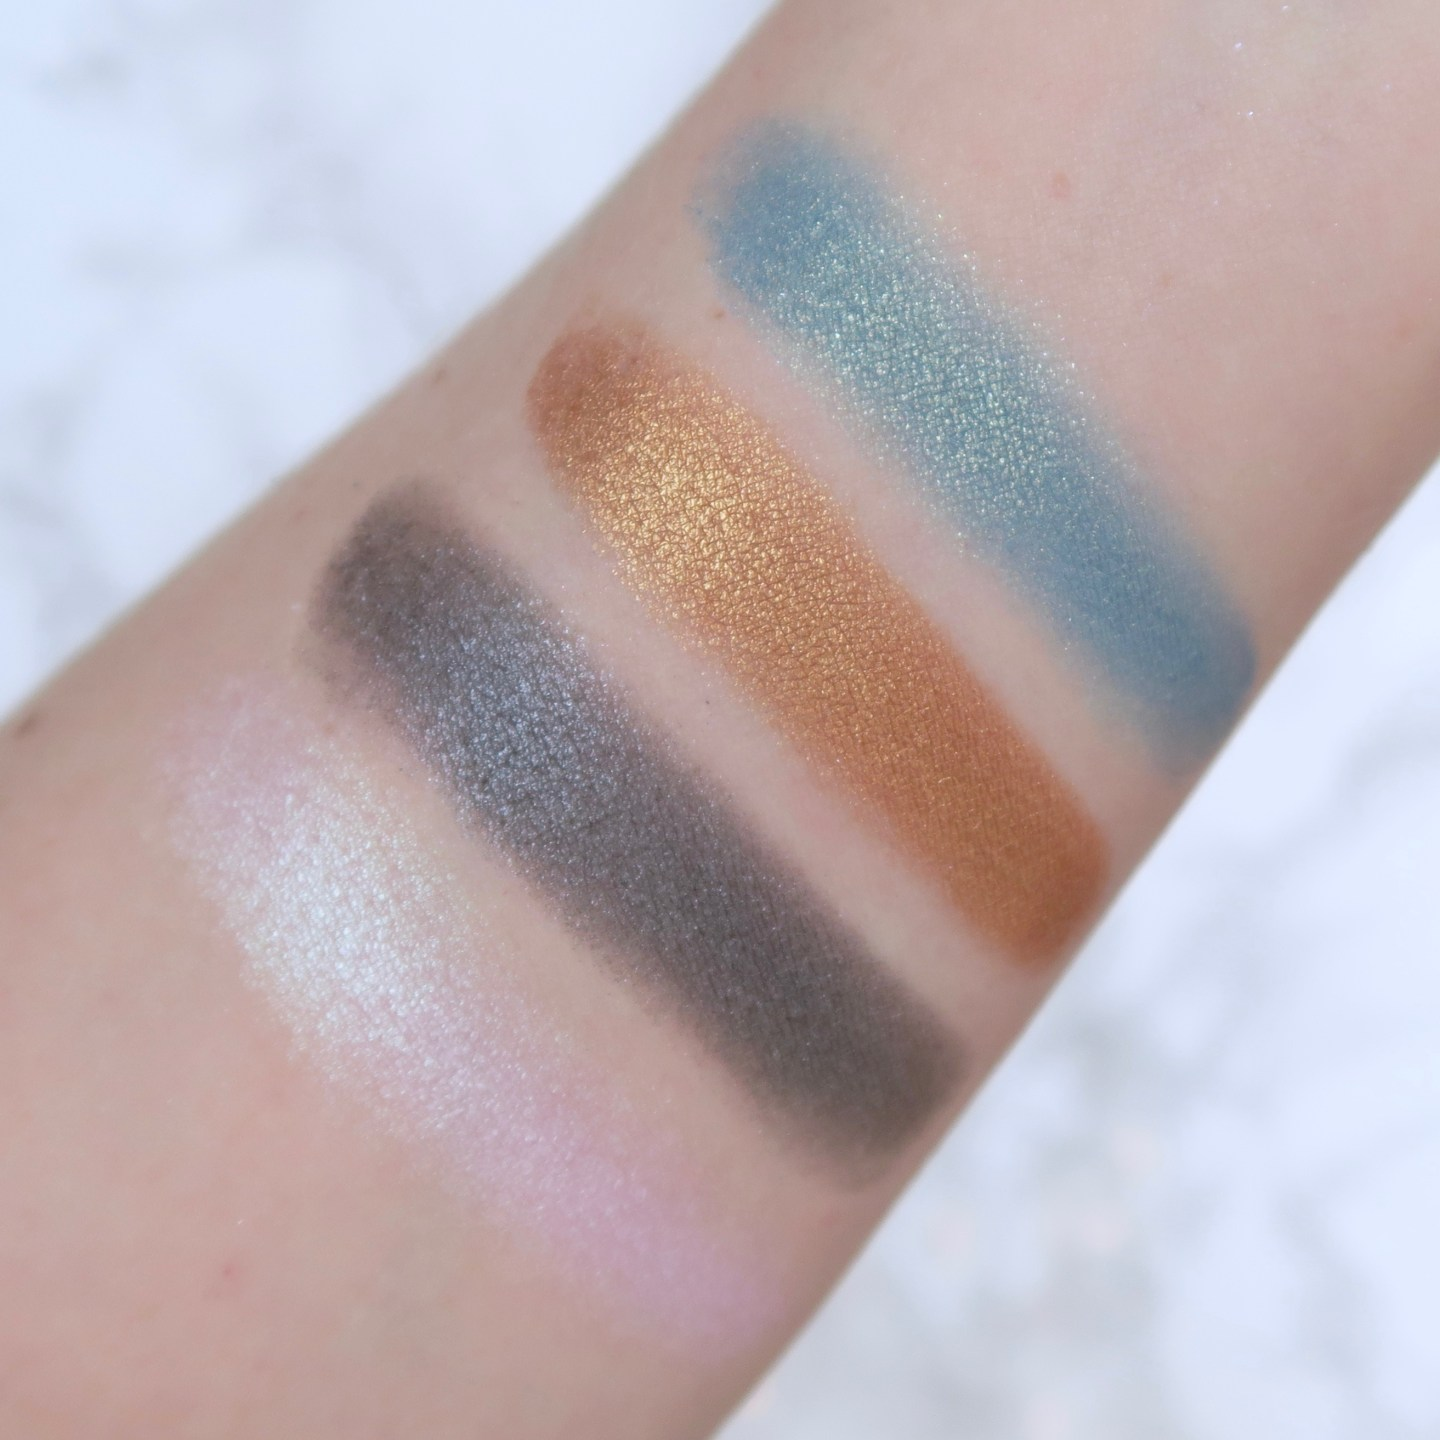 NYX In Your Element 'Metals' palette swatches